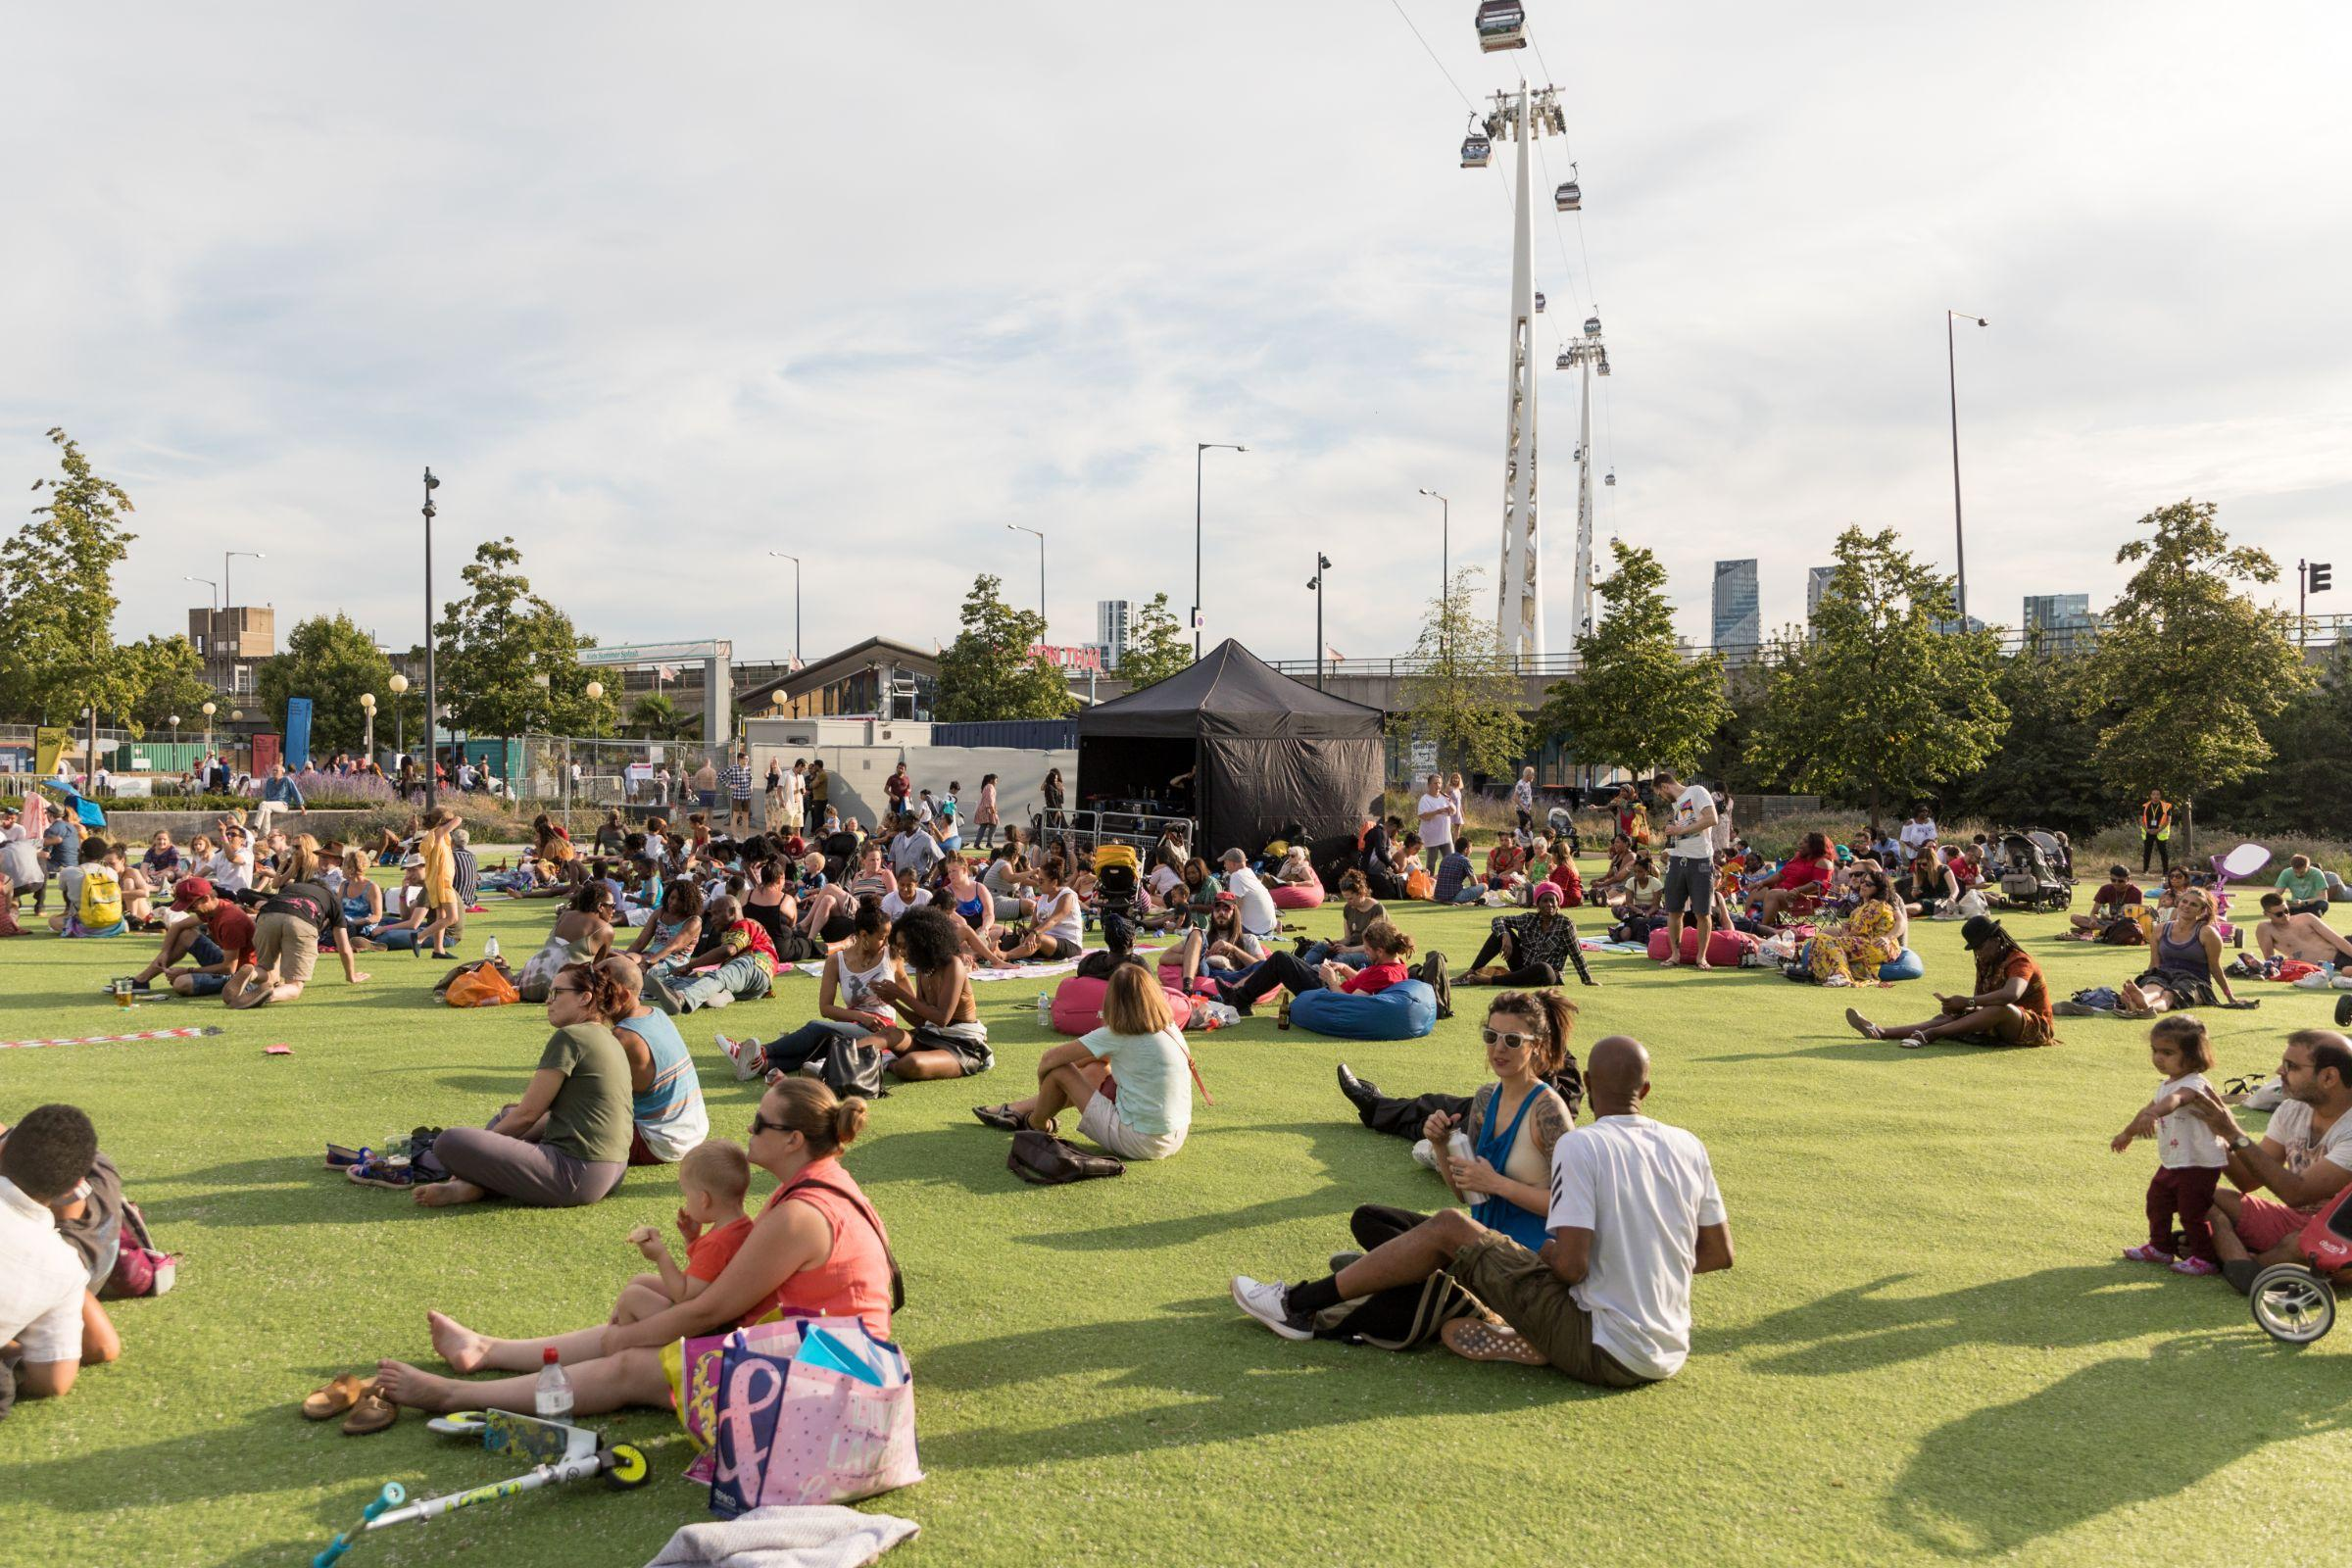 A large crowd sat on grass in the sunshine